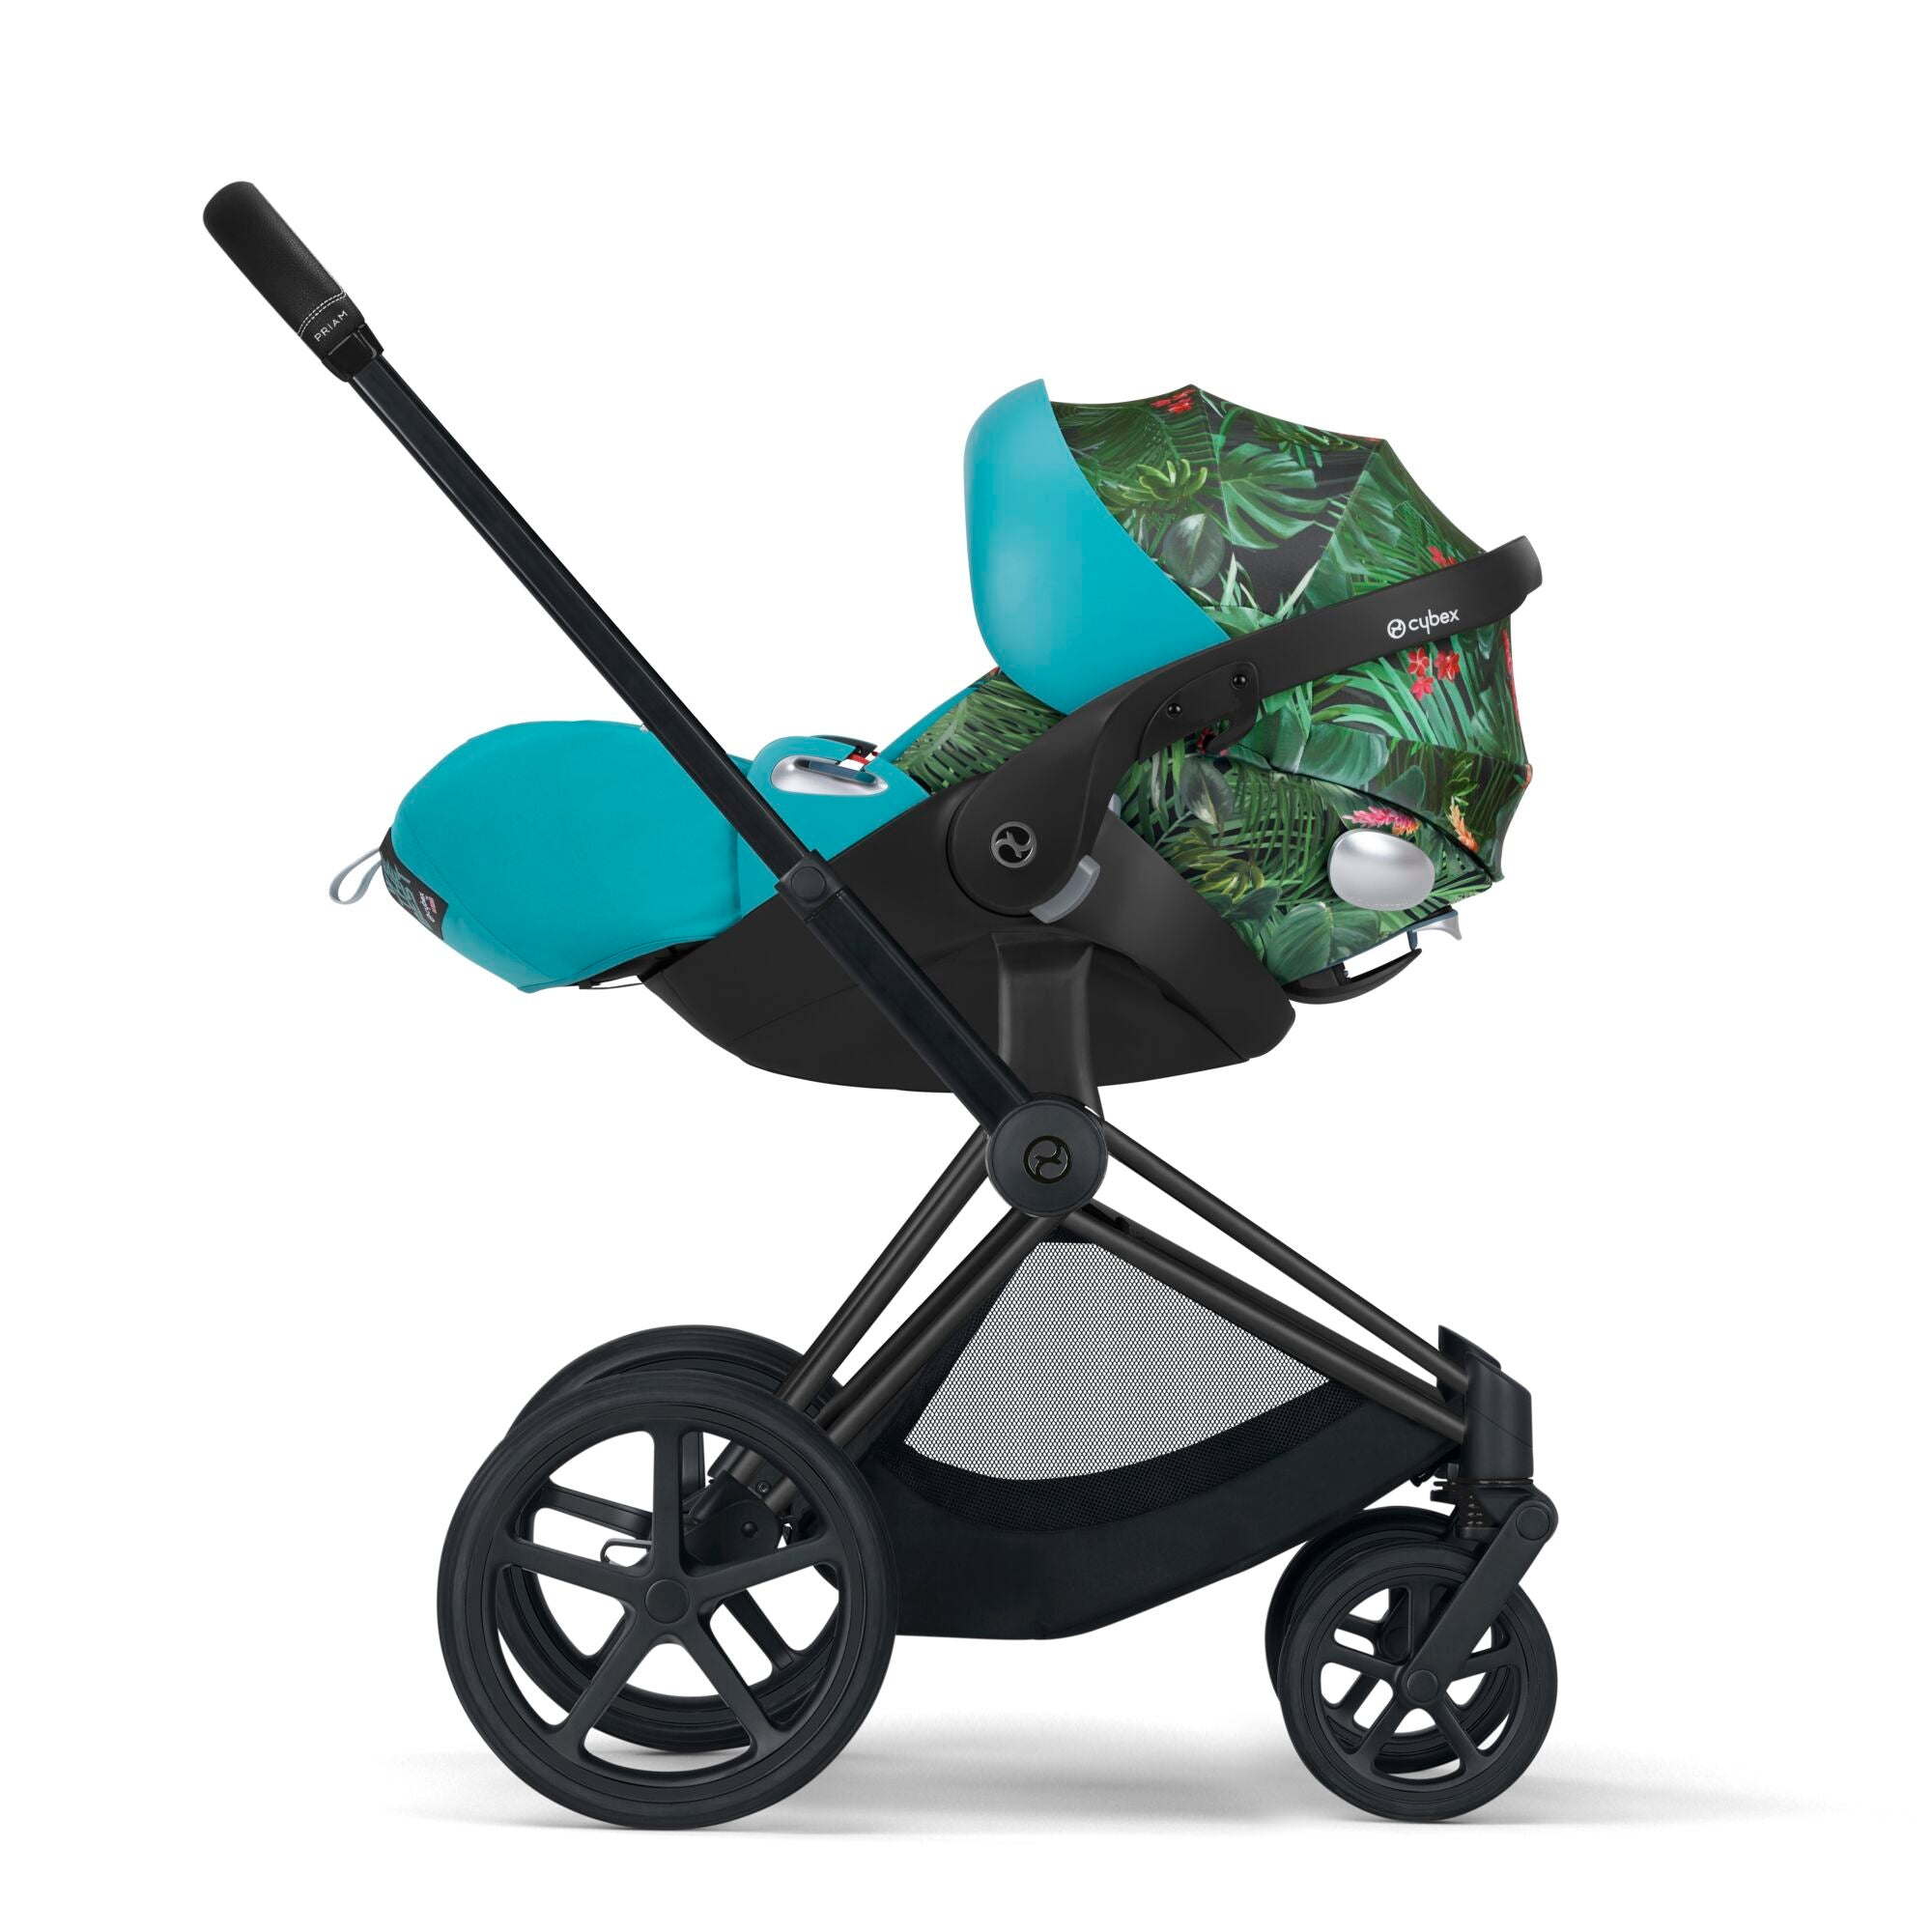 Cybex Priam3 Stroller, Carry Cot, and Cloud Q Infant Car Seat Bundle - We The Best by DJ Khaled